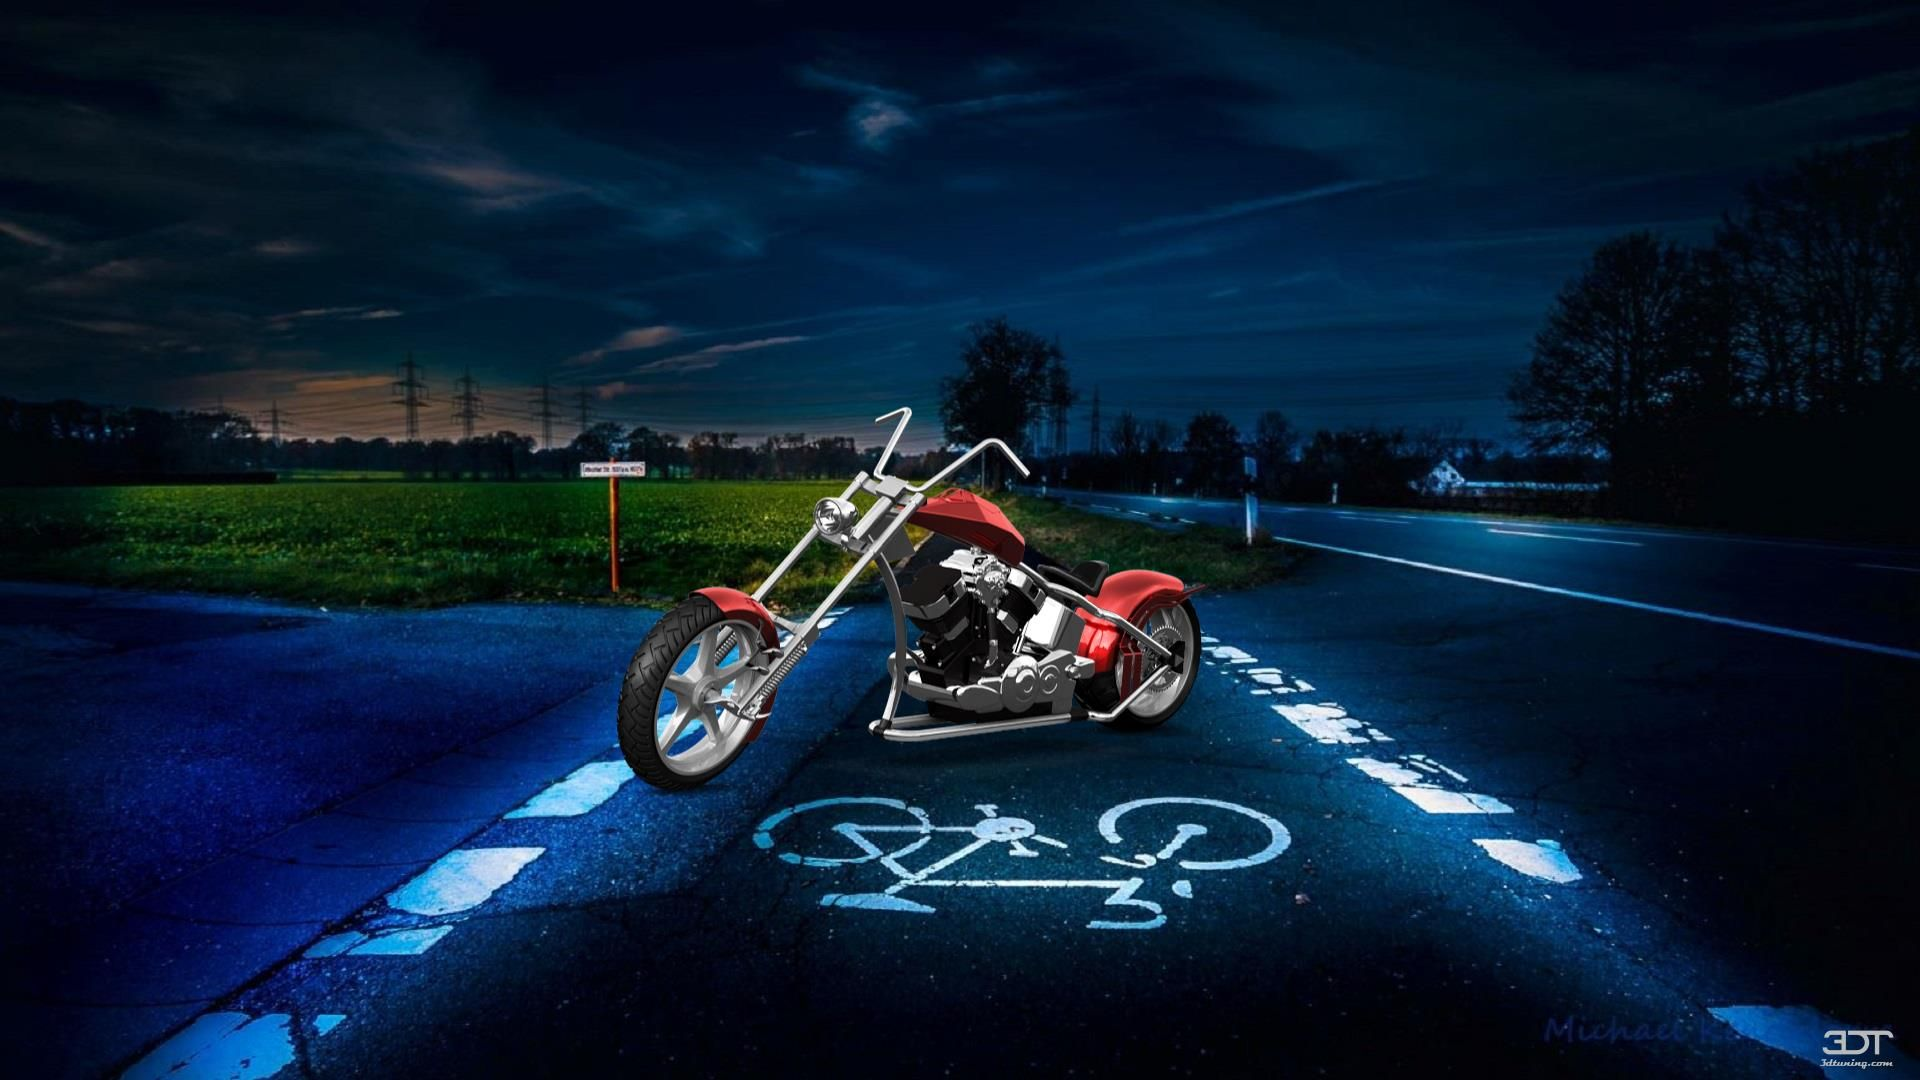 Checkout my tuning custom chopper 2017 at 3dtuning 3dtuning tuning